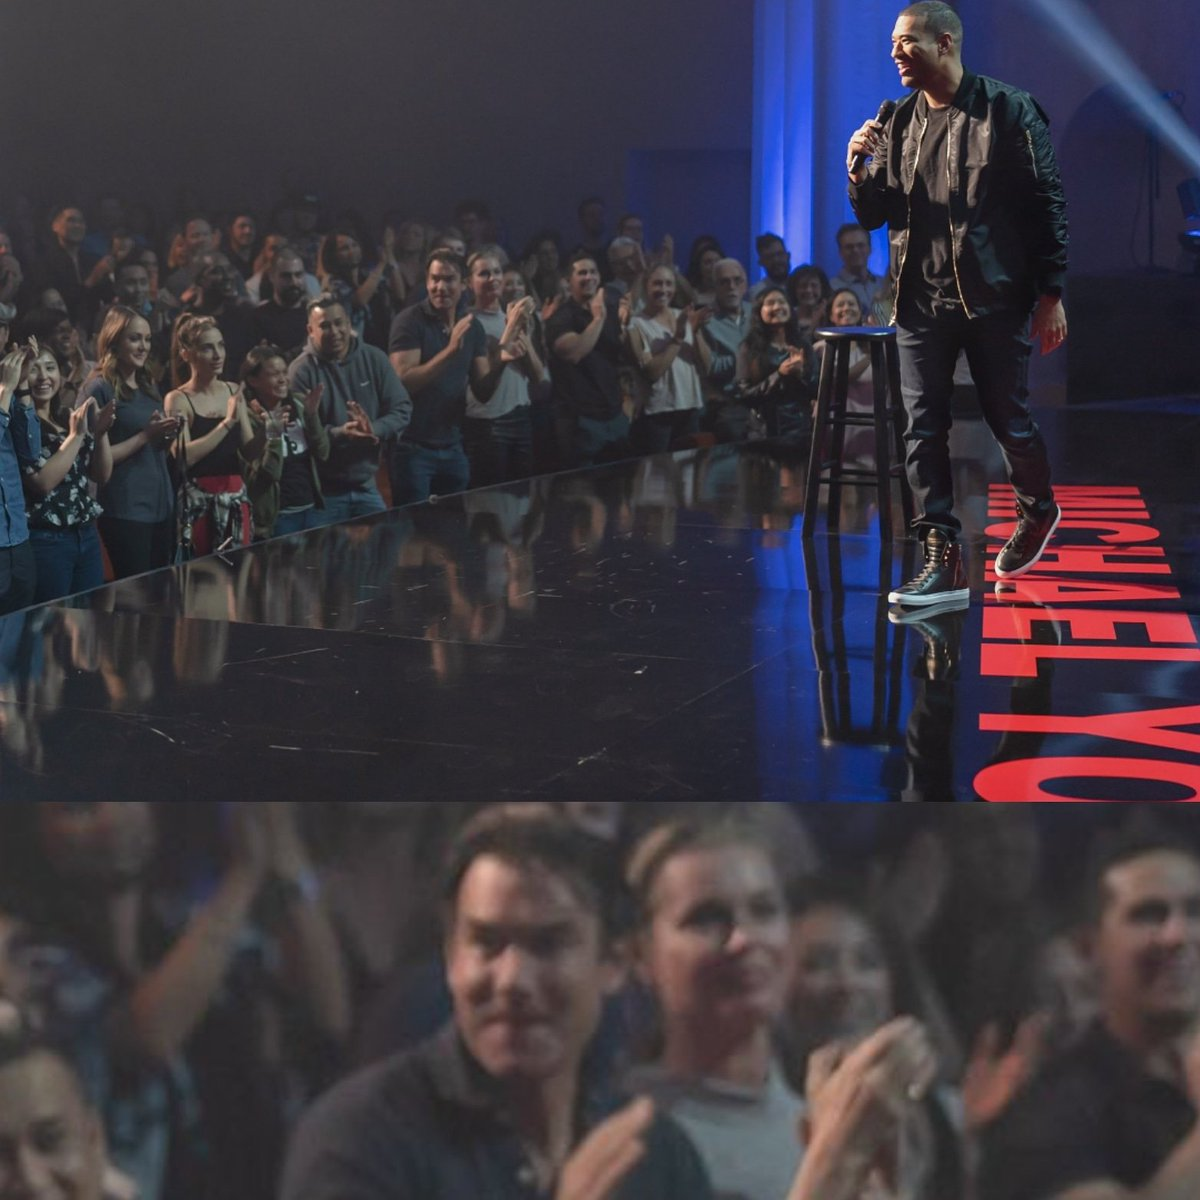 Today @michaelyo Special drops! That is @RebeccaRomijn and I in the front row.